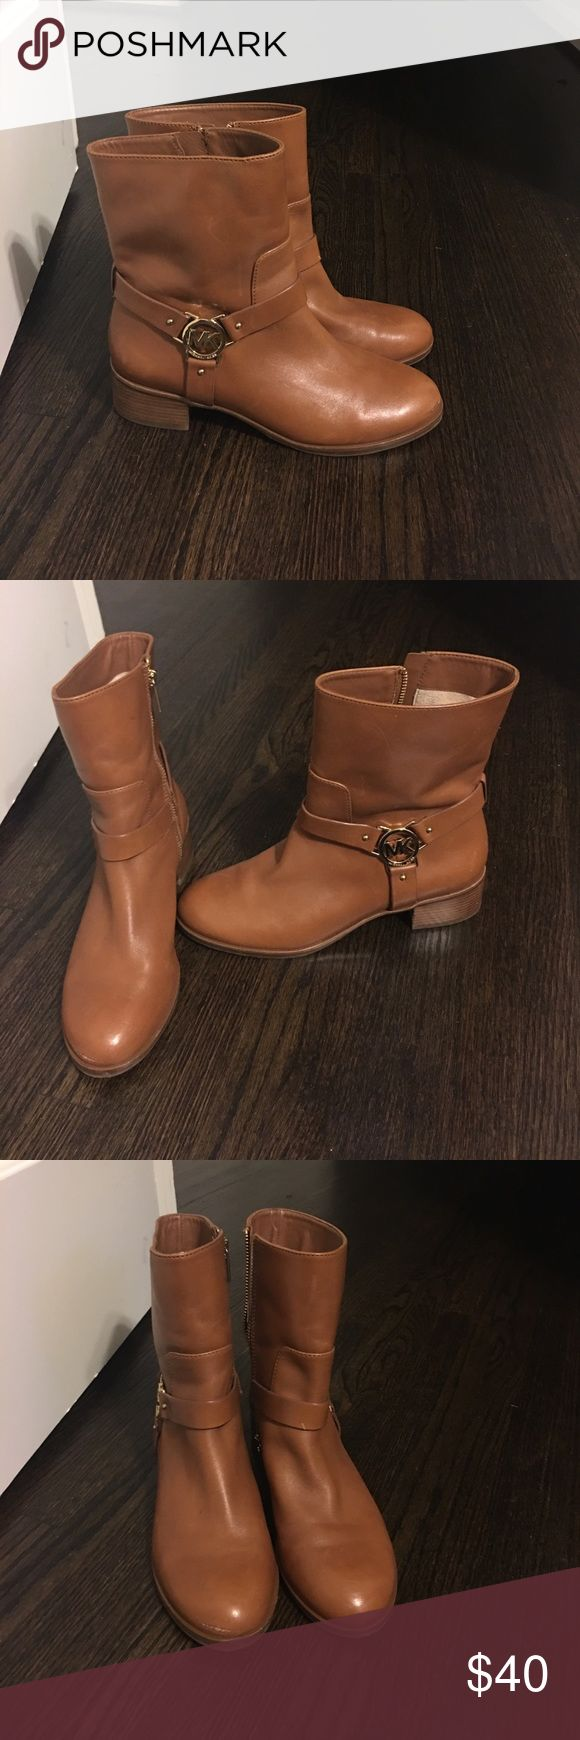 🌹Michael Kors Tan Leather Boots 8M 🌟Super Hot 🌟 Michael Kors Tan Leather Boots-8M: These have been worn 2x since purchased two years ago. There is a small scratch across the toe point of one shoe. They were too small for my size. KORS Michael Kors Shoes Ankle Boots & Booties